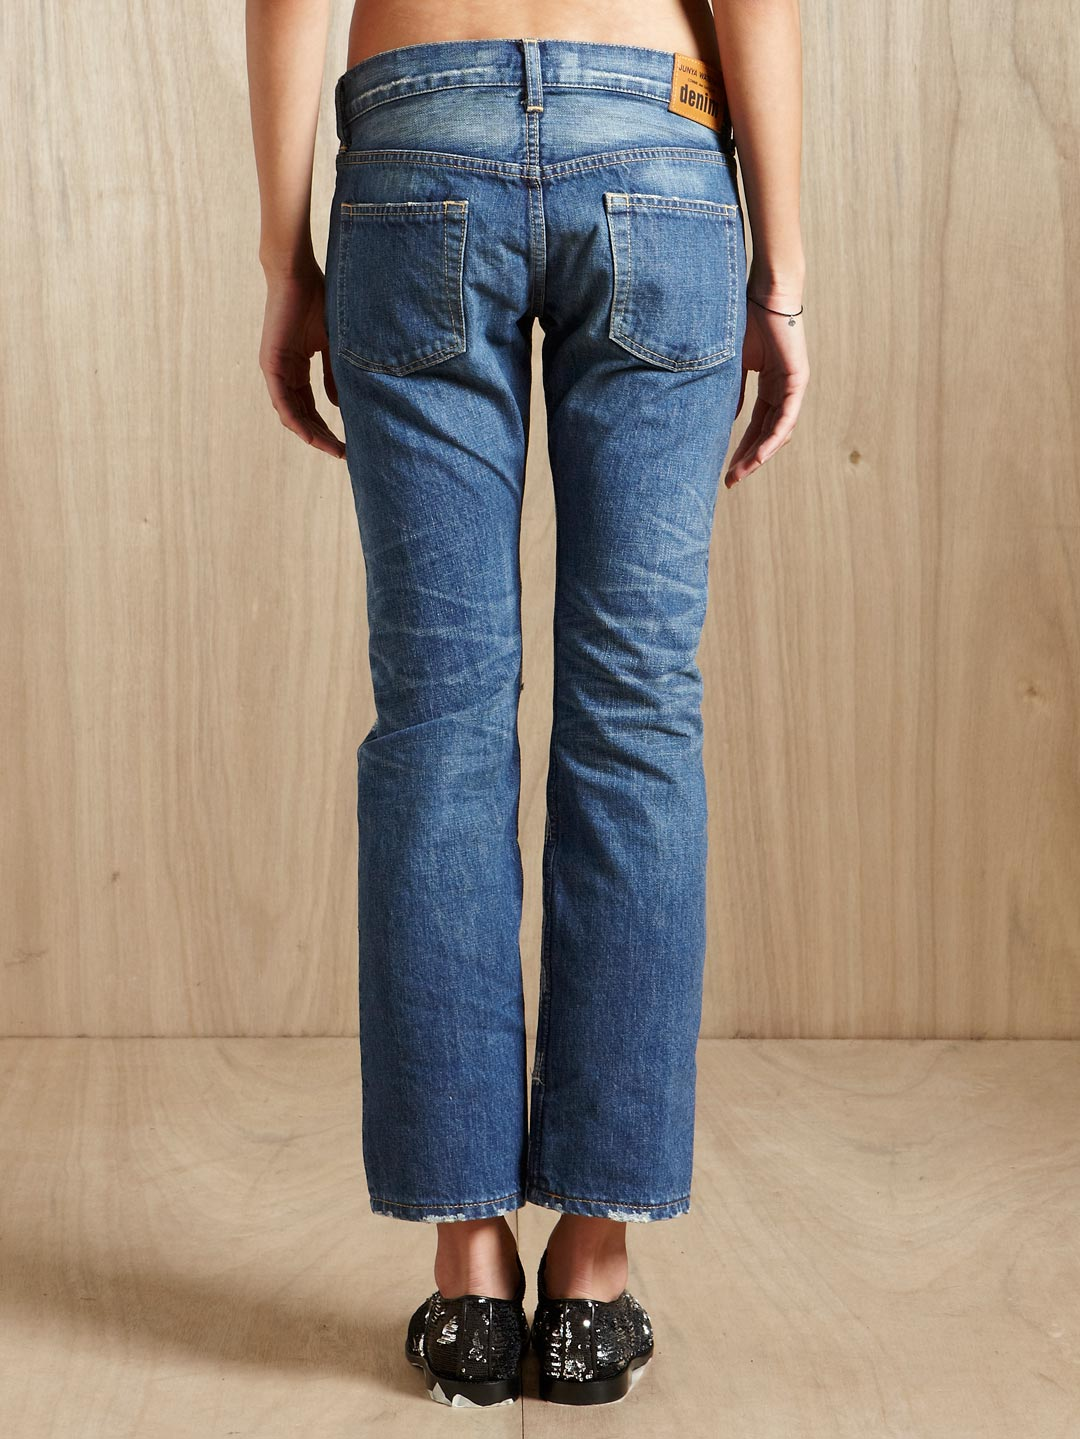 Discount For Sale destroyed jeans Junya Watanabe Cheap Affordable Free Shipping Best Wholesale Buy Cheap Low Shipping Big Discount Cheap Price S3Jj4q